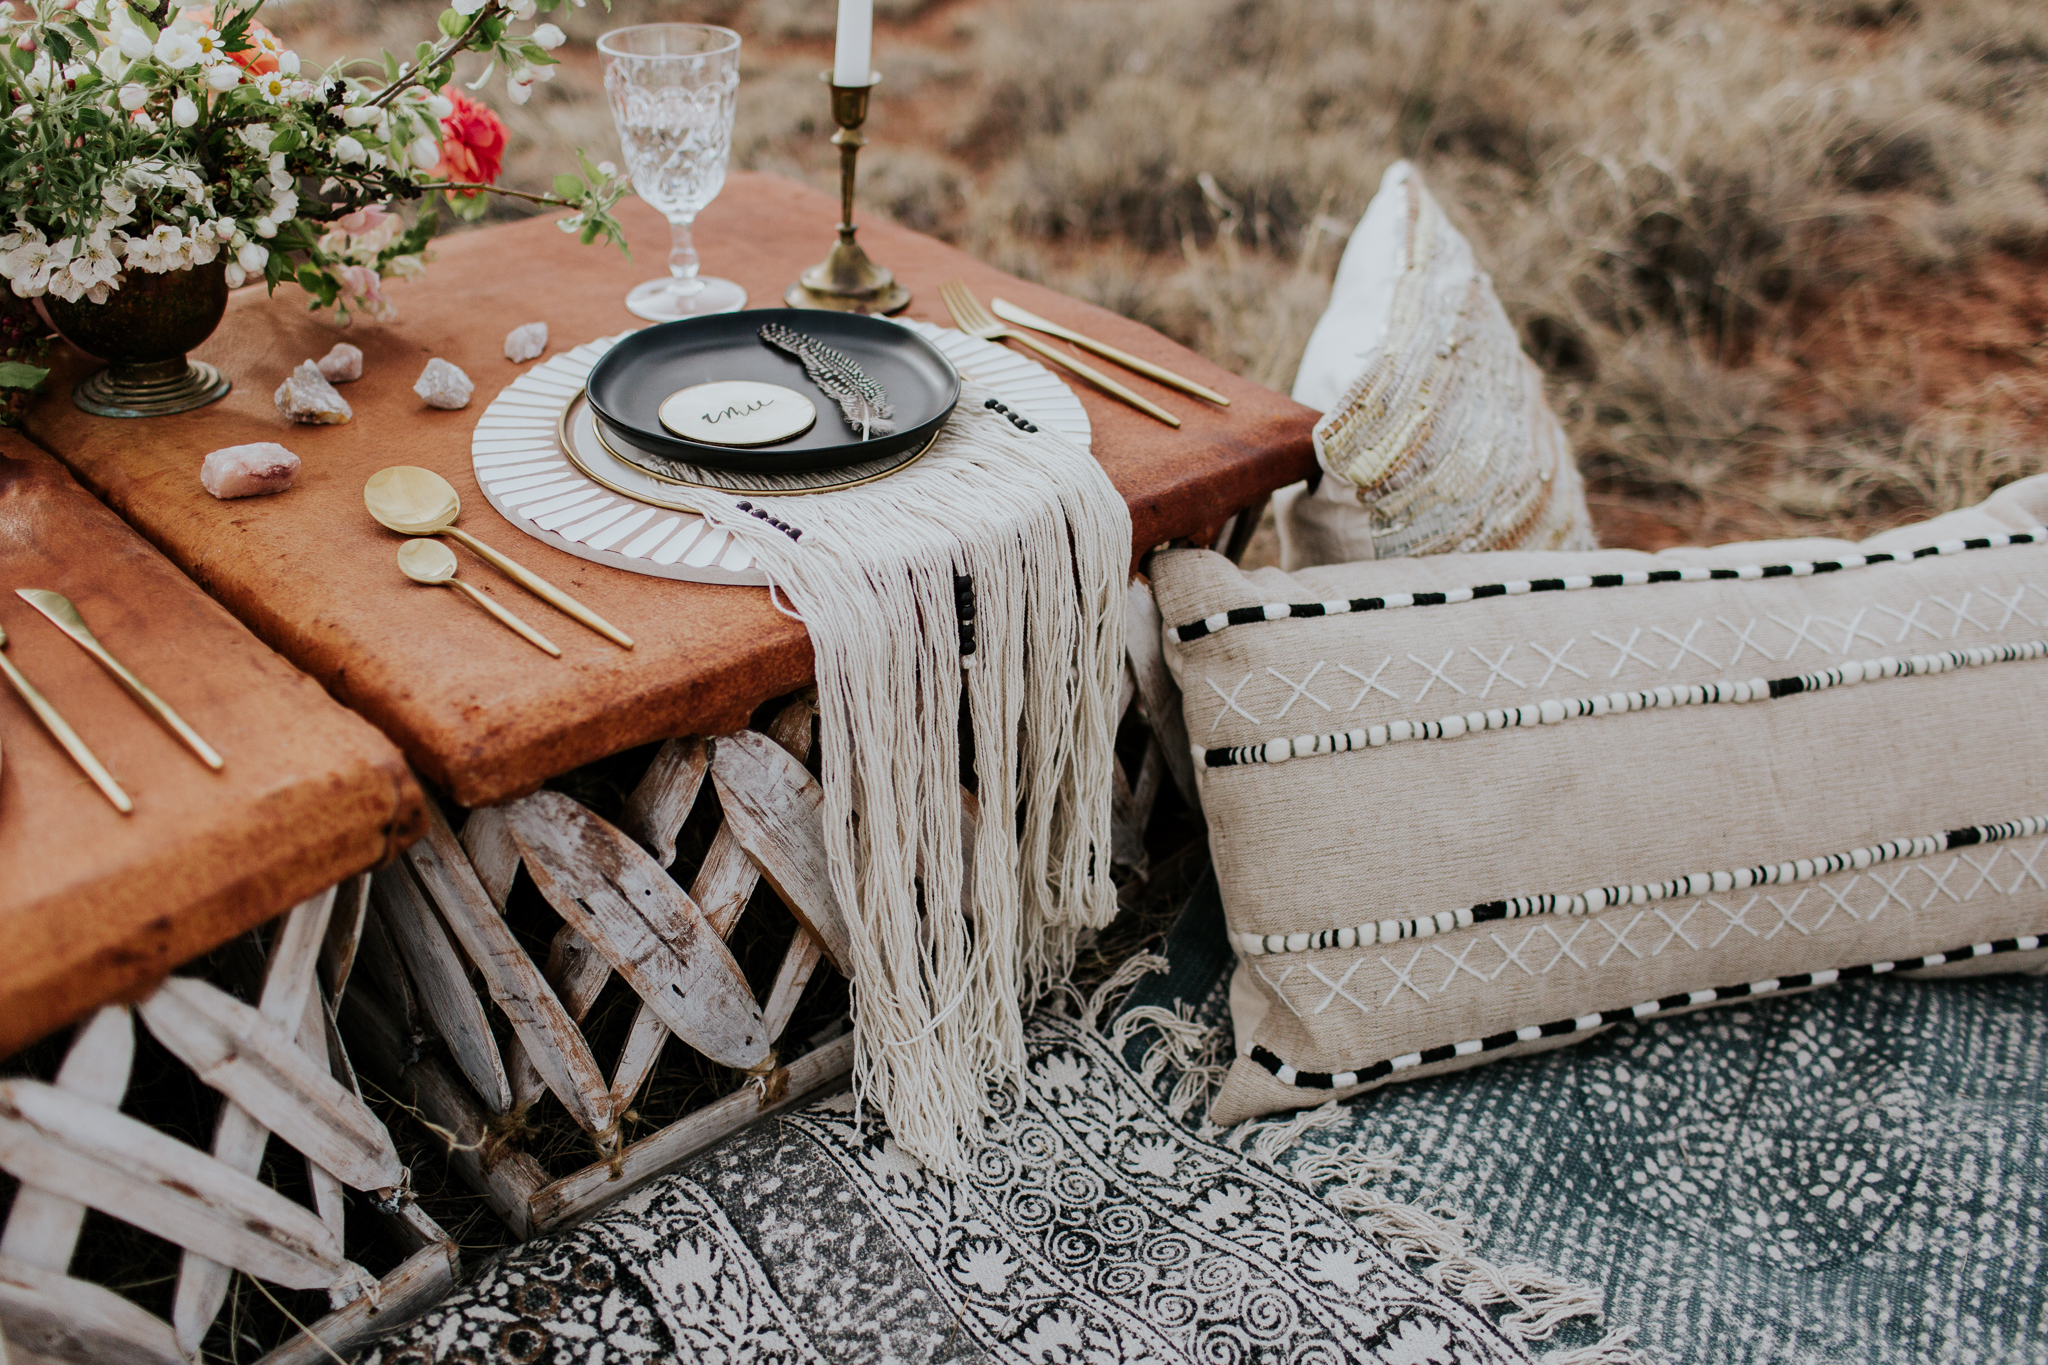 new mexico elopement adventurous hiking desert wedding travel destination intimate elope southwest